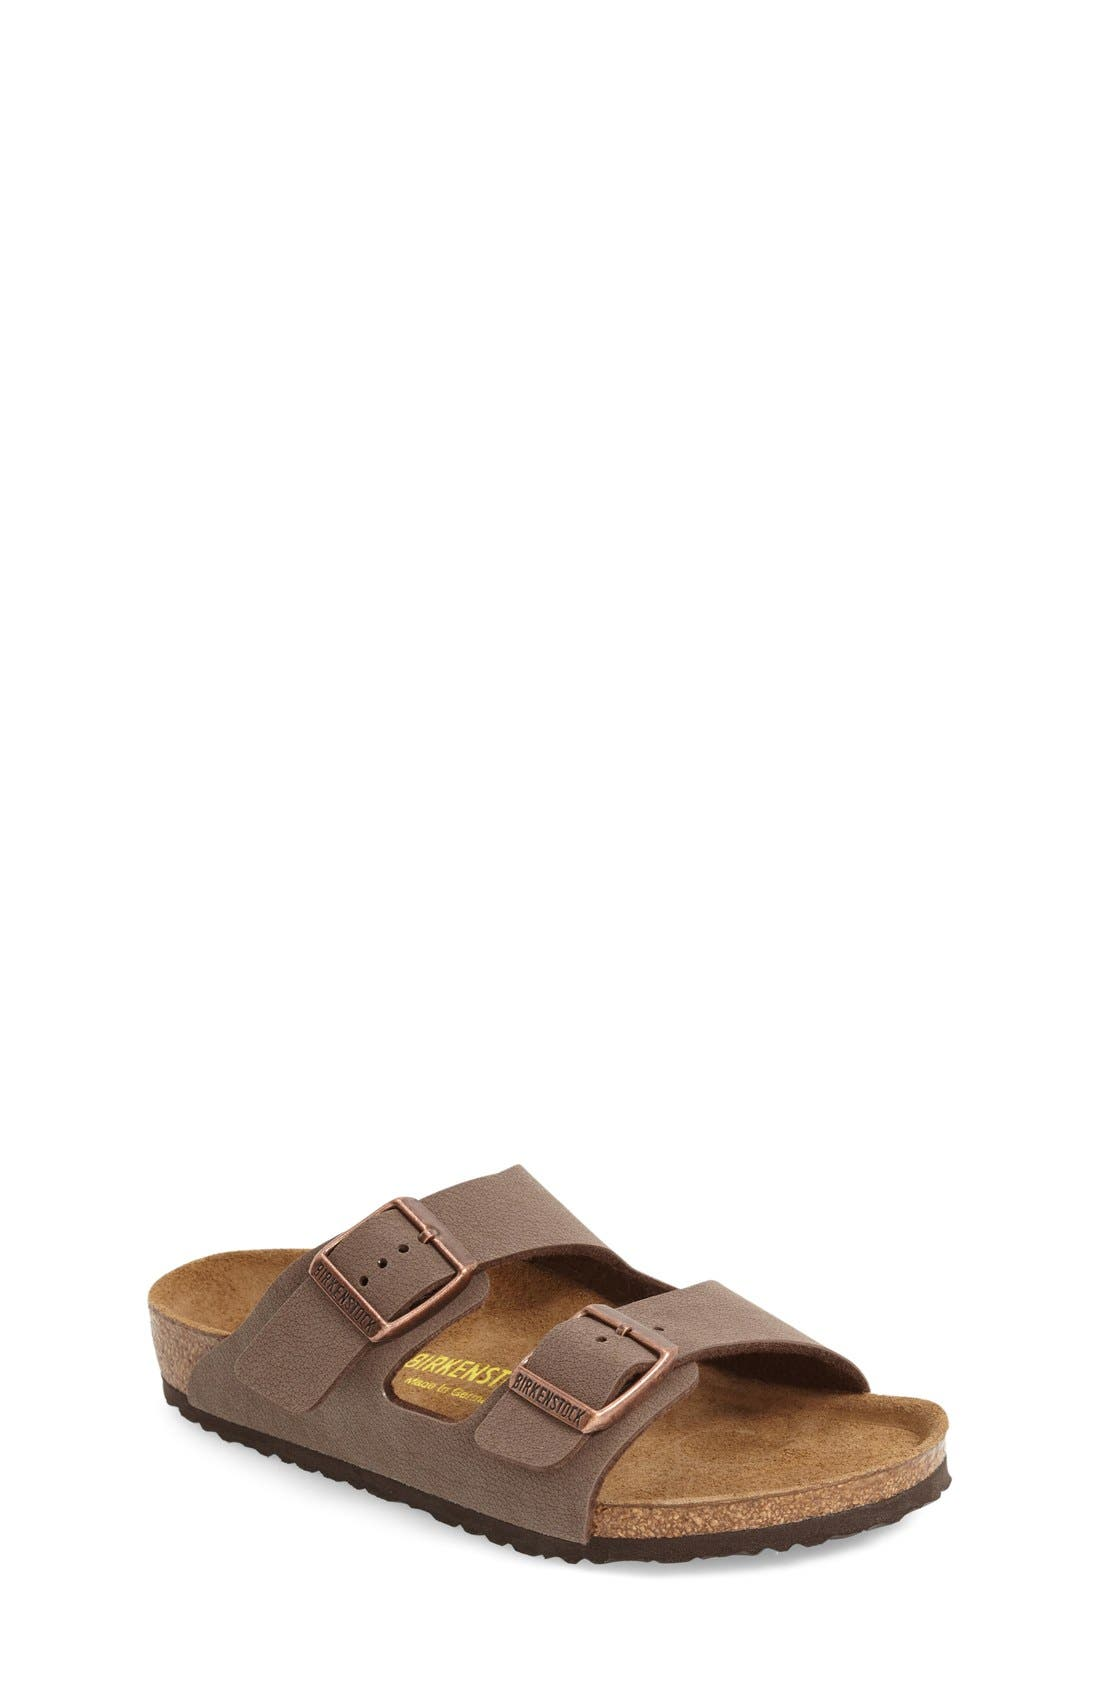 Birkenstock 'Arizona' Suede Sandal (Walker, Toddler & Little Kid)